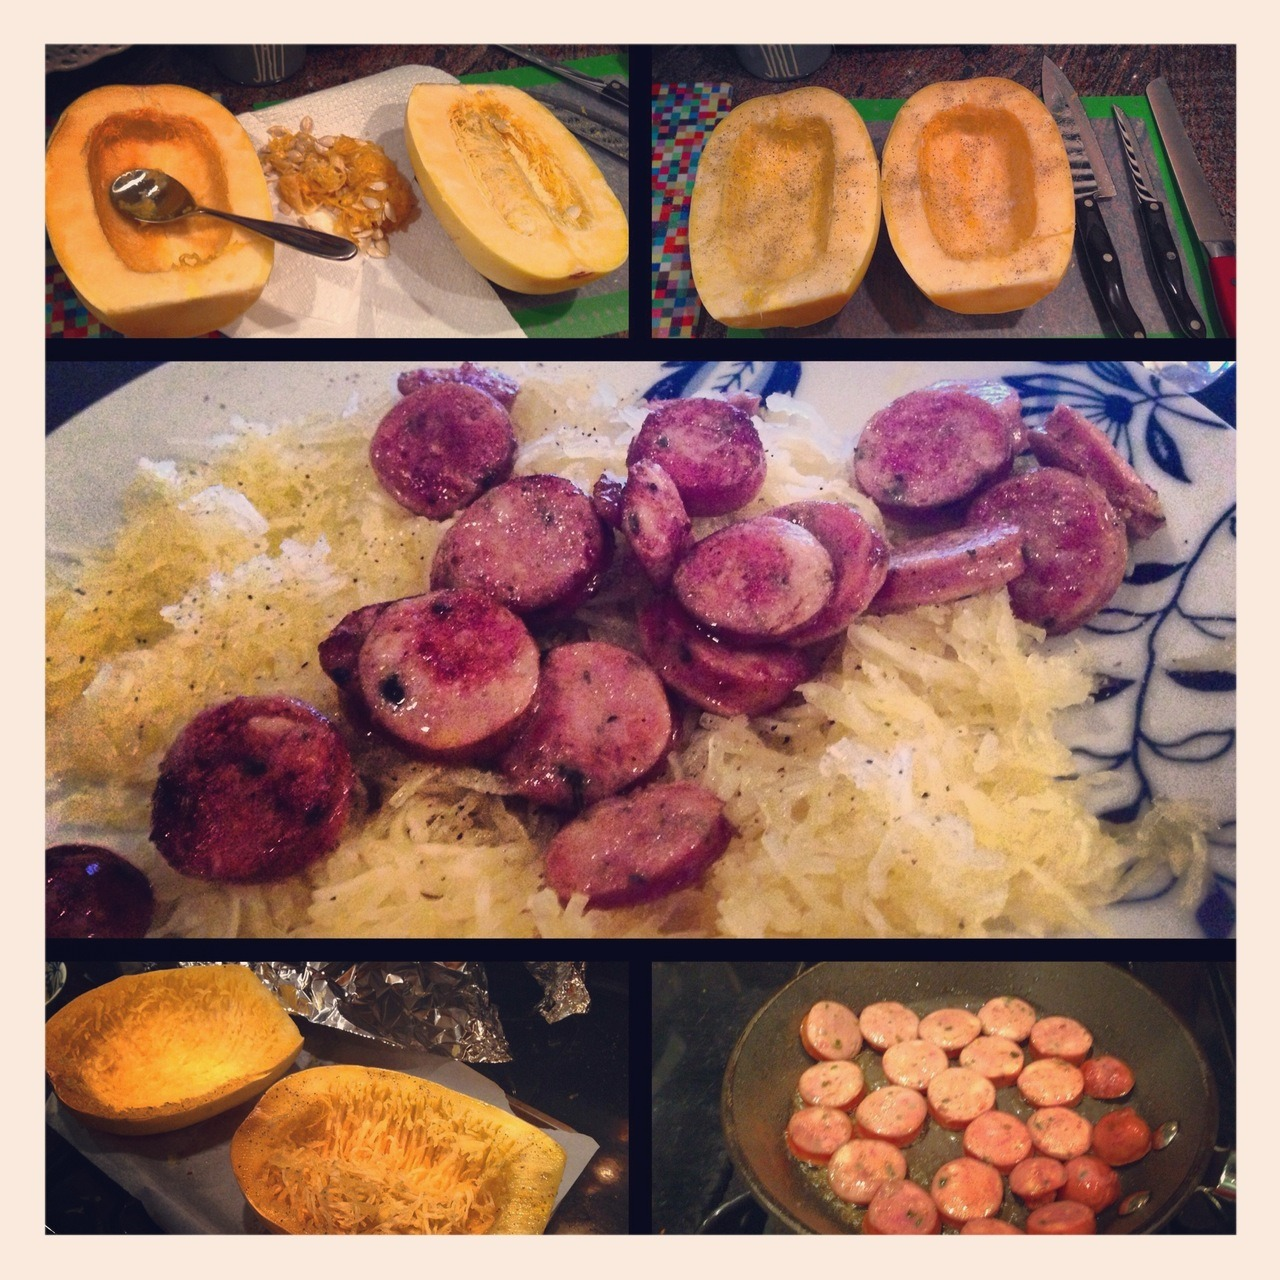 Adventures with Spaghetti Squash! Last night I bought a spaghetti squash for the very first time.  I've been wanting to try them for a while now and just decided to bite the bullet.   First off….just cutting it was a feat!  It took three different knives to get through it (see the picture on the top right!).  But I finally got it split in half and the seeds taken out.  I did not like this part at all…I had carving pumpkins and this was all too similar to pumpkin carving.  Yuck.  I got it all seasoned and flipped upside down on the pan. Covered it in tin foil like the recipe suggested and baked it at 375.  The recipe I was following said to bake it for 30-40 minutes.  I pulled the squash out at 35 minutes and it was nowhere near being done.  I ended up baking it for another 15 minutes but it probably needed 20.   While the squash was cooling I cut up some Italian chicken sausage and pan fried it with a little bit of olive oil.  I didn't have any meat with lunch and I was really feeling it so I had two links instead of the usual one.  I love the Open Nature chicken sausages. If you haven't tried them yet, you totally should.  The bottom left picture was mid scraping.  I didn't wait for it to cool enough which was a big mistake. I ended up burning my fingers!  But my stomach was a' rumblin.  To serve, I just sprayed the squash with a little bit more olive oil and sprinkled on a bit more salt and pepper. Then I topped it with the sausage! It was SO GOOD!  I will definitely be making this again!  It was filling but not super heavy but really full of flavor.  I'm a big fan.  Also, the meal was 10PP.  If I had done just one chicken link it would have been a measly 6PP! Awesome! So there you go….spaghetti squash.  Love it!